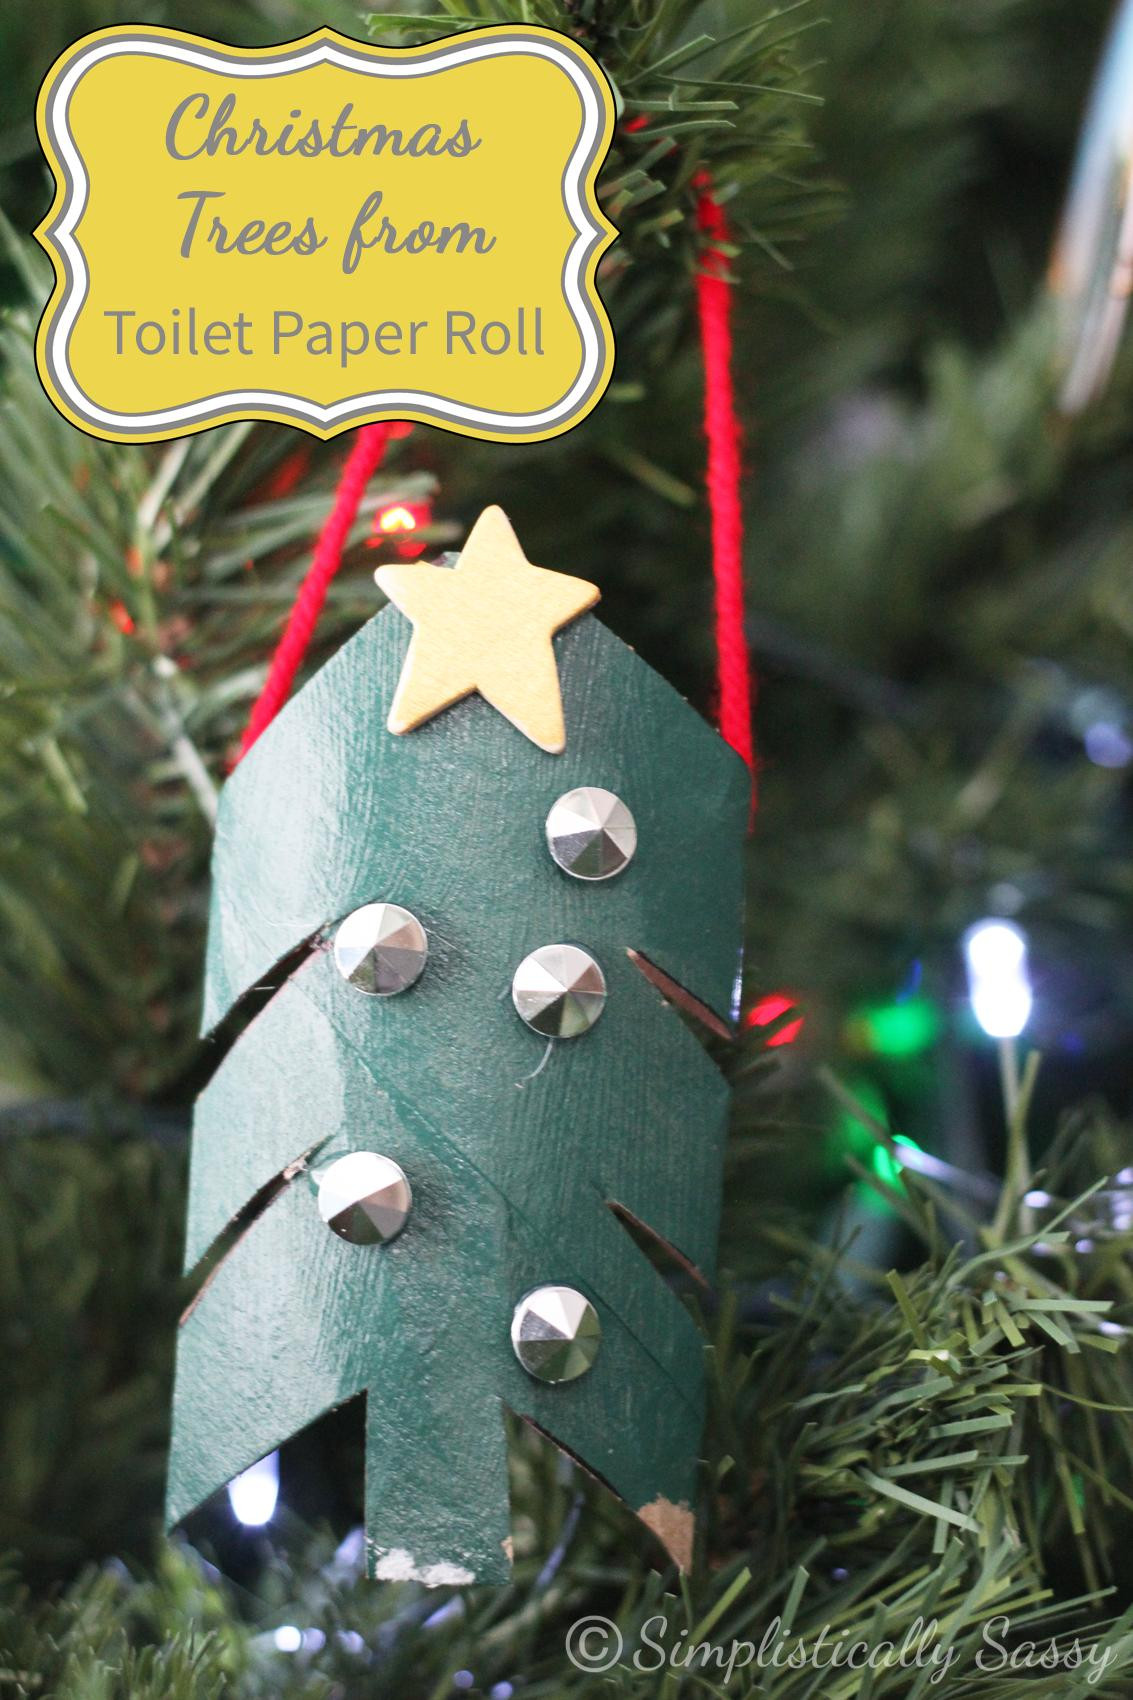 Toilet Paper Roll Crafts Christmas  Toilet Paper Rolls Archives Simplistically Sassy